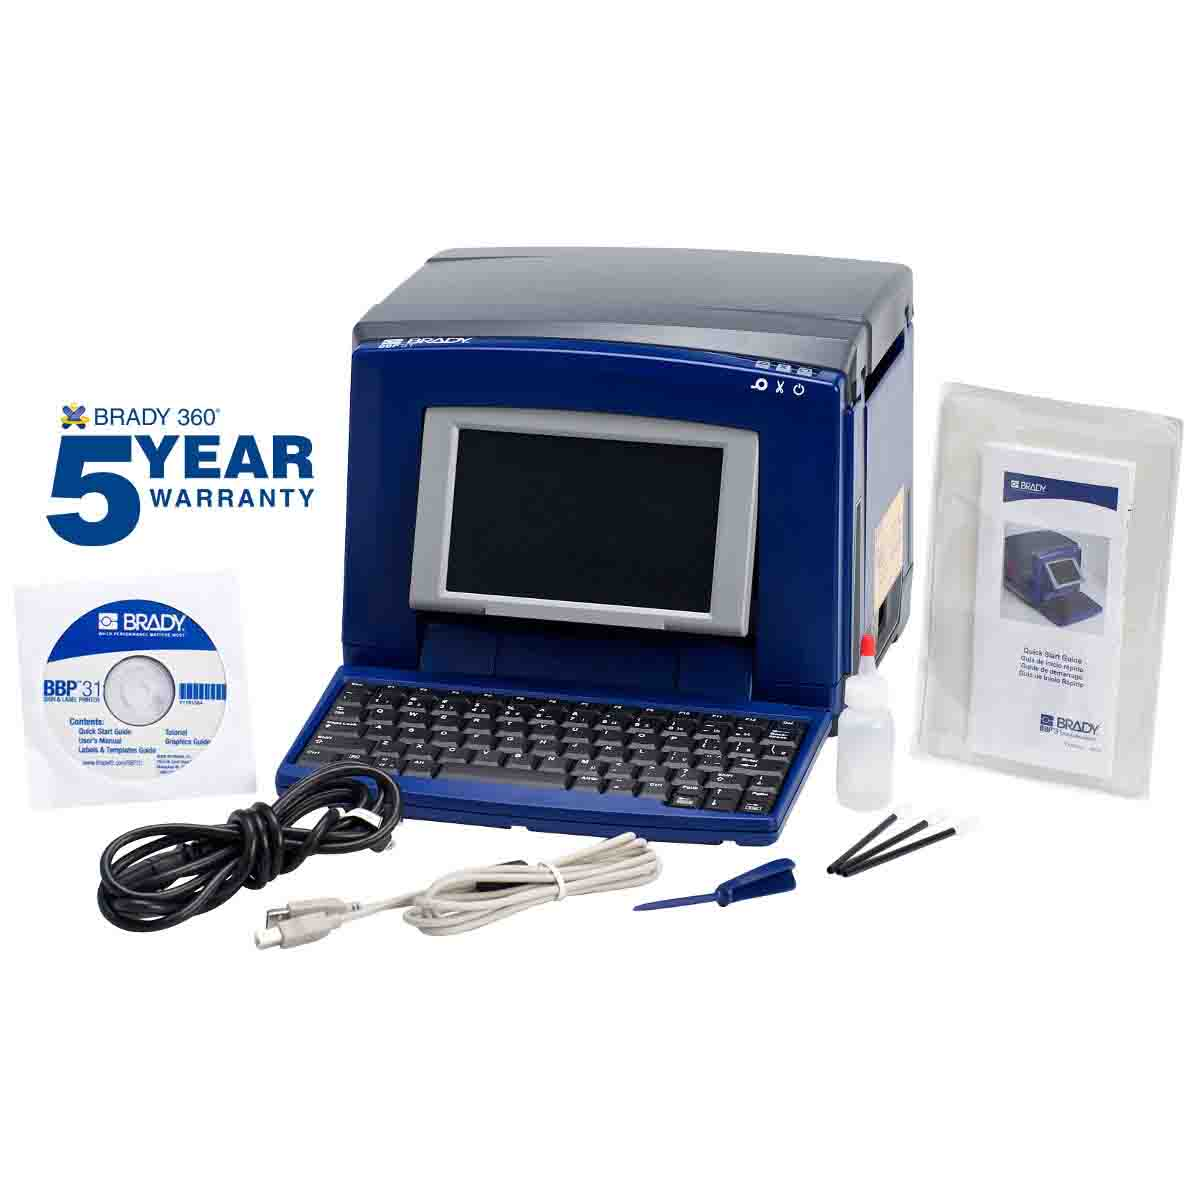 BRADY BBP31 BBP31 SIGN AND LABELMAKER( OBSOLETE, SUPERCEDED BY #S3100 )